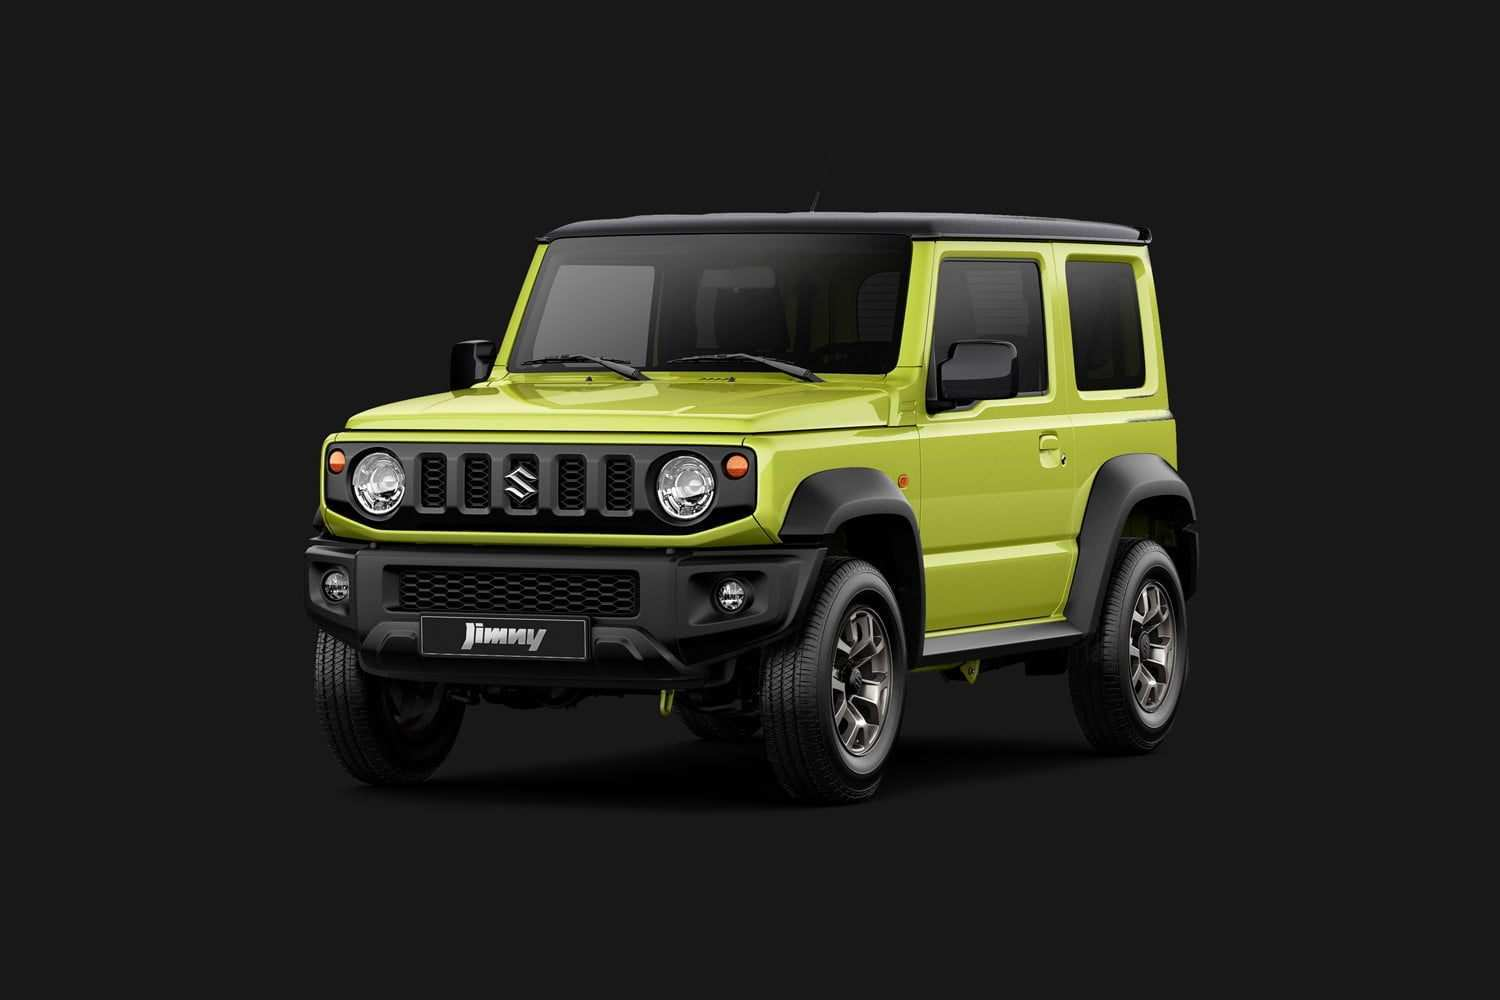 64 The 2020 Suzuki Jimny Model Pricing